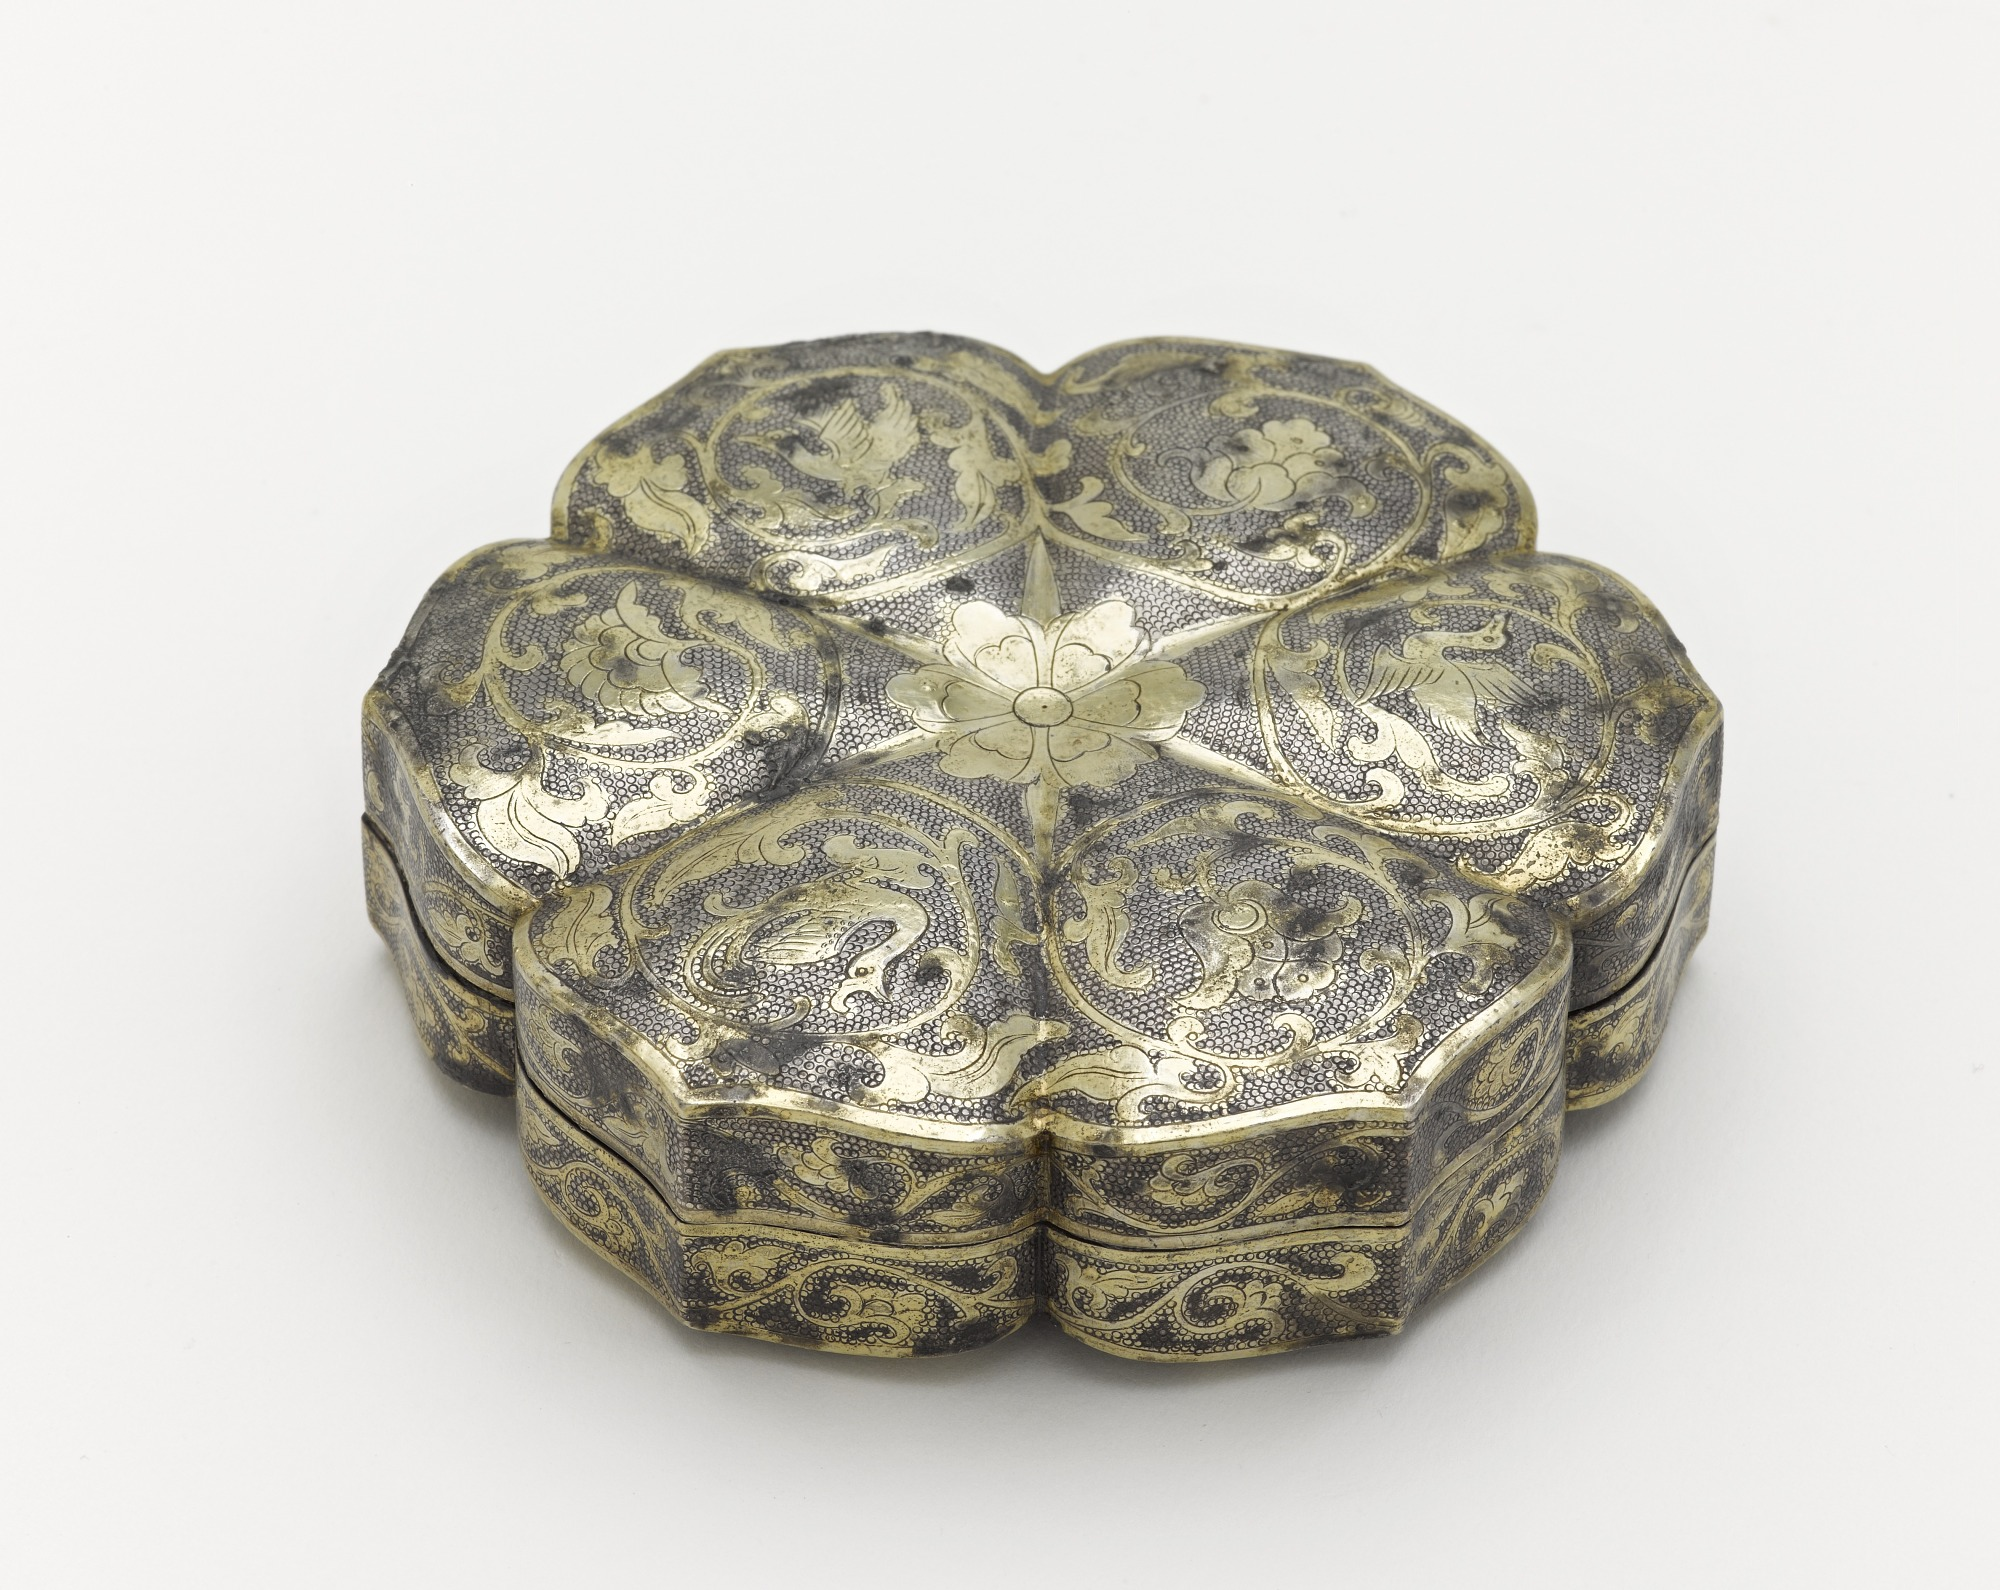 3/4 profile: Covered box in the form of a six petalled flower with birds and floral scrolls